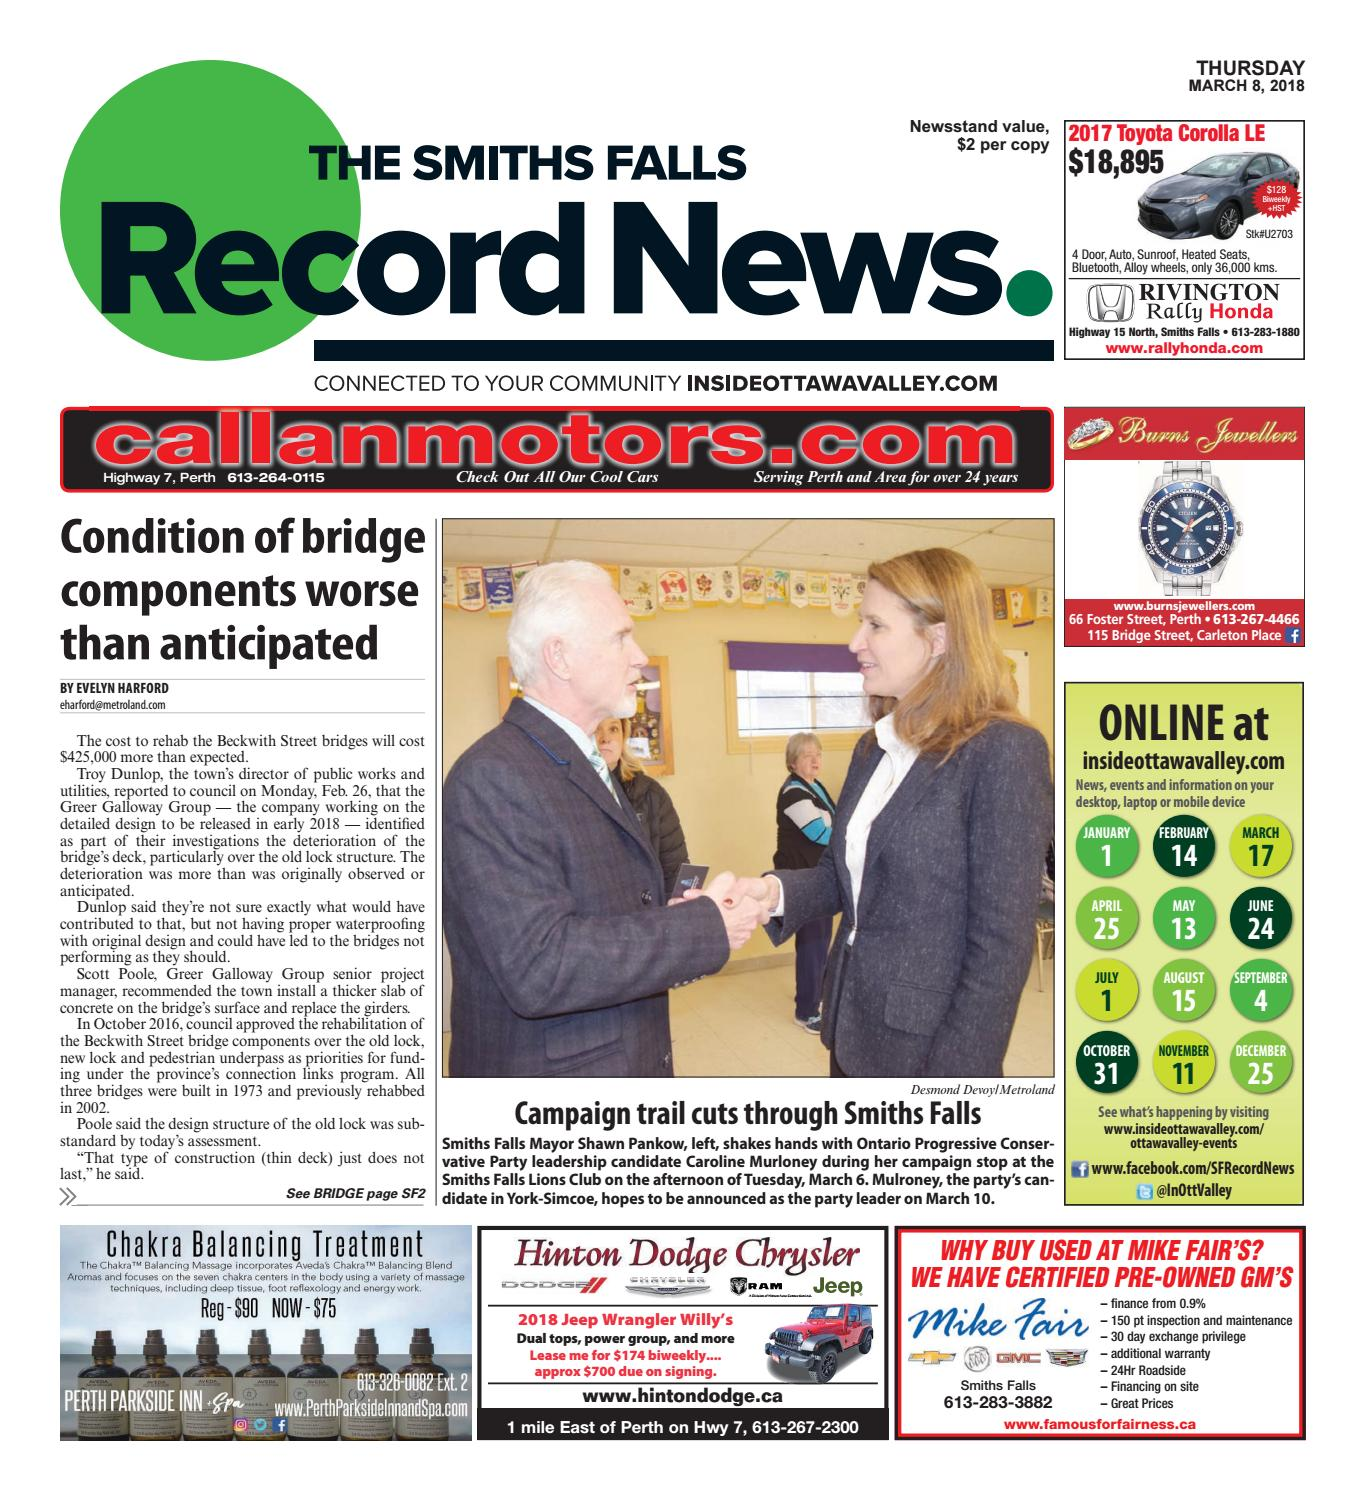 Smithsfalls030818 by Metroland East - Smiths Falls Record News - issuu